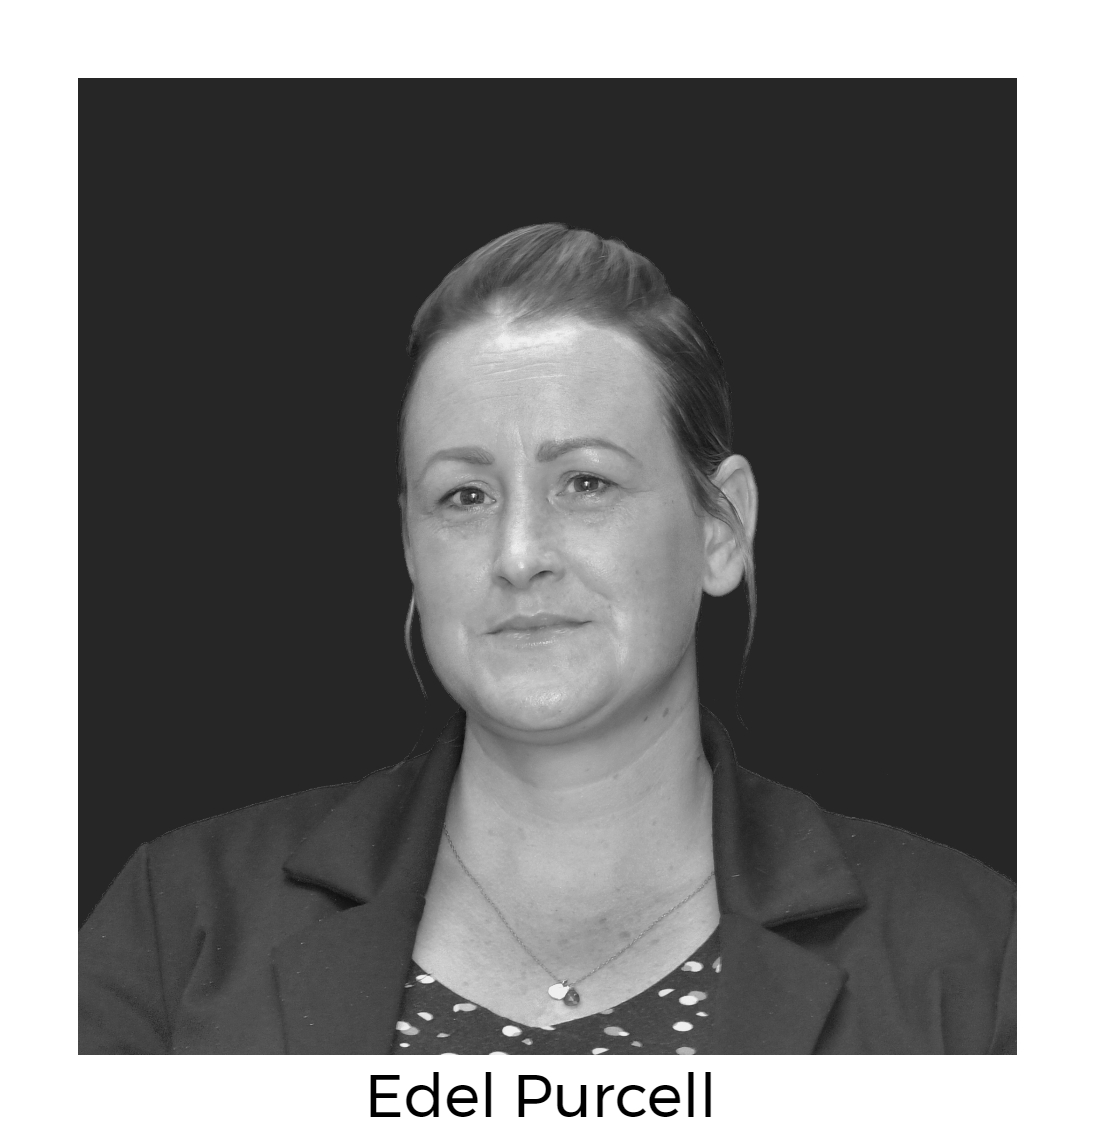 Edel Purcell